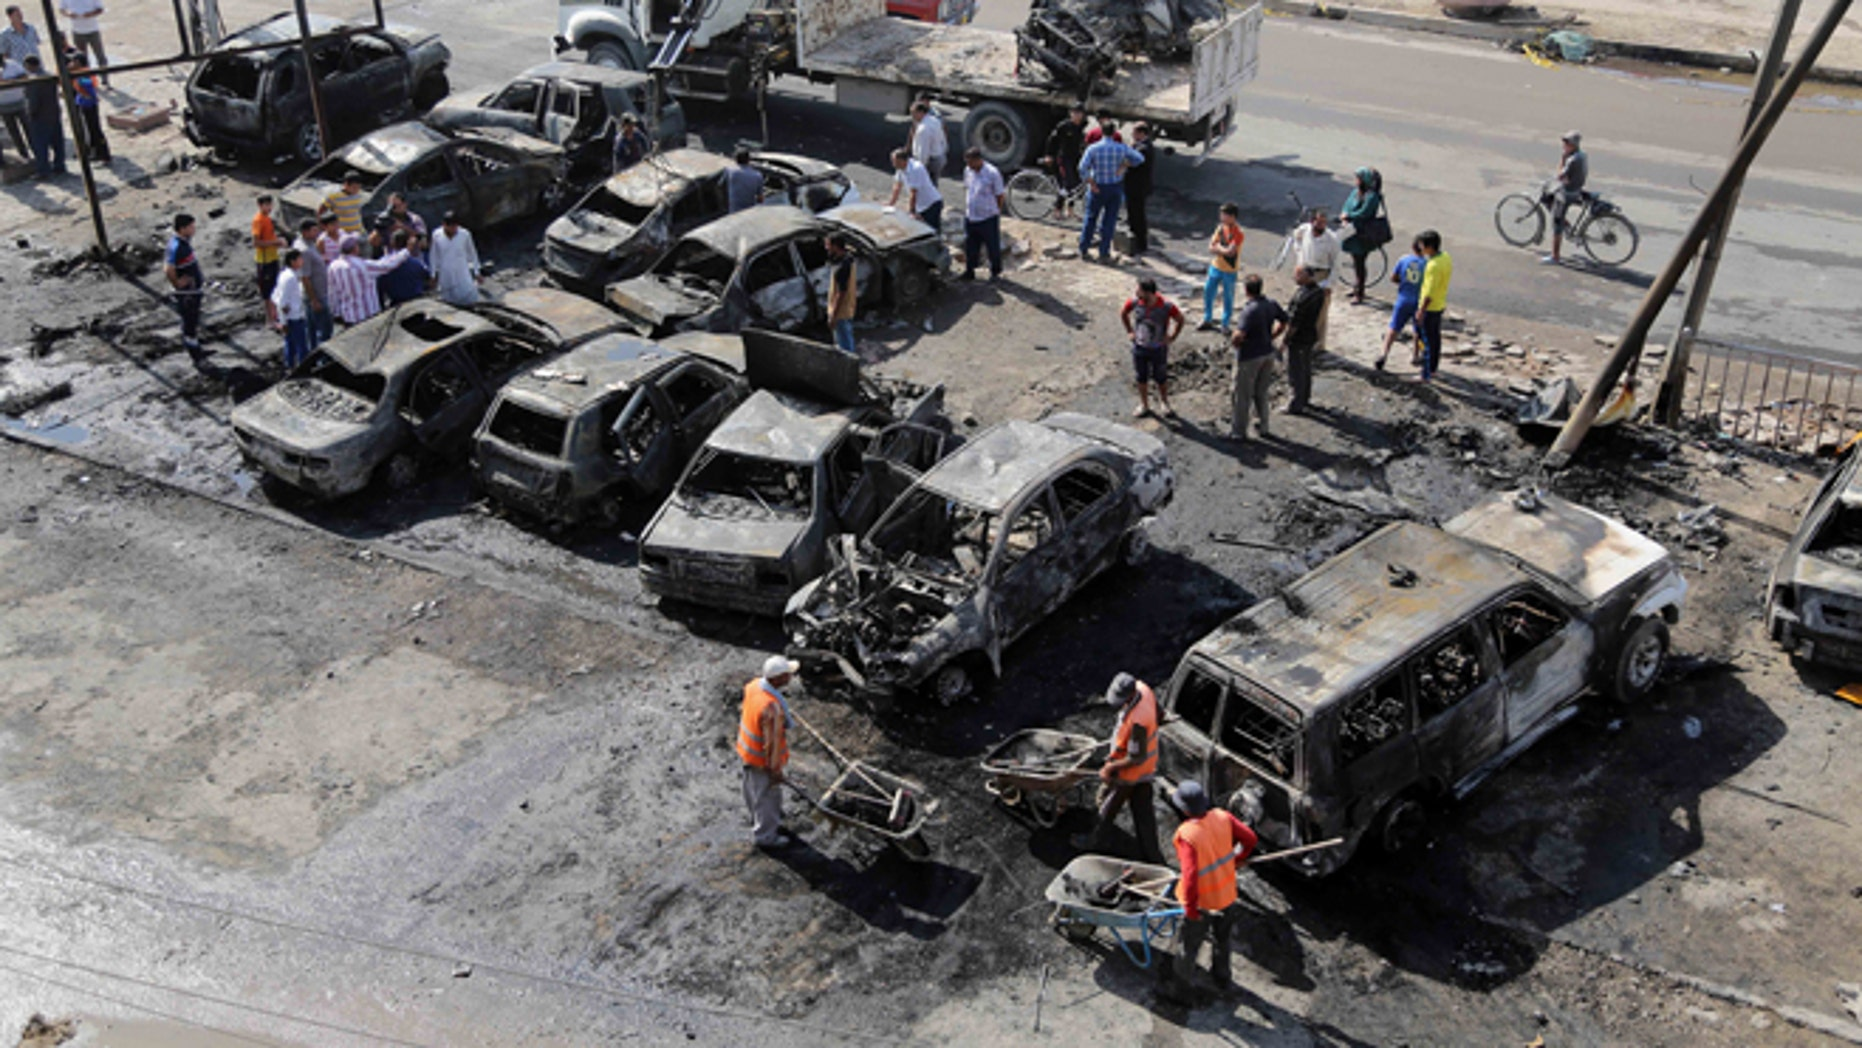 Oct. 27, 2013: Baghdad municipality workers clear debris while citizens inspect the site of a car bomb attack in a neighborhood of Baghdad, Iraq.